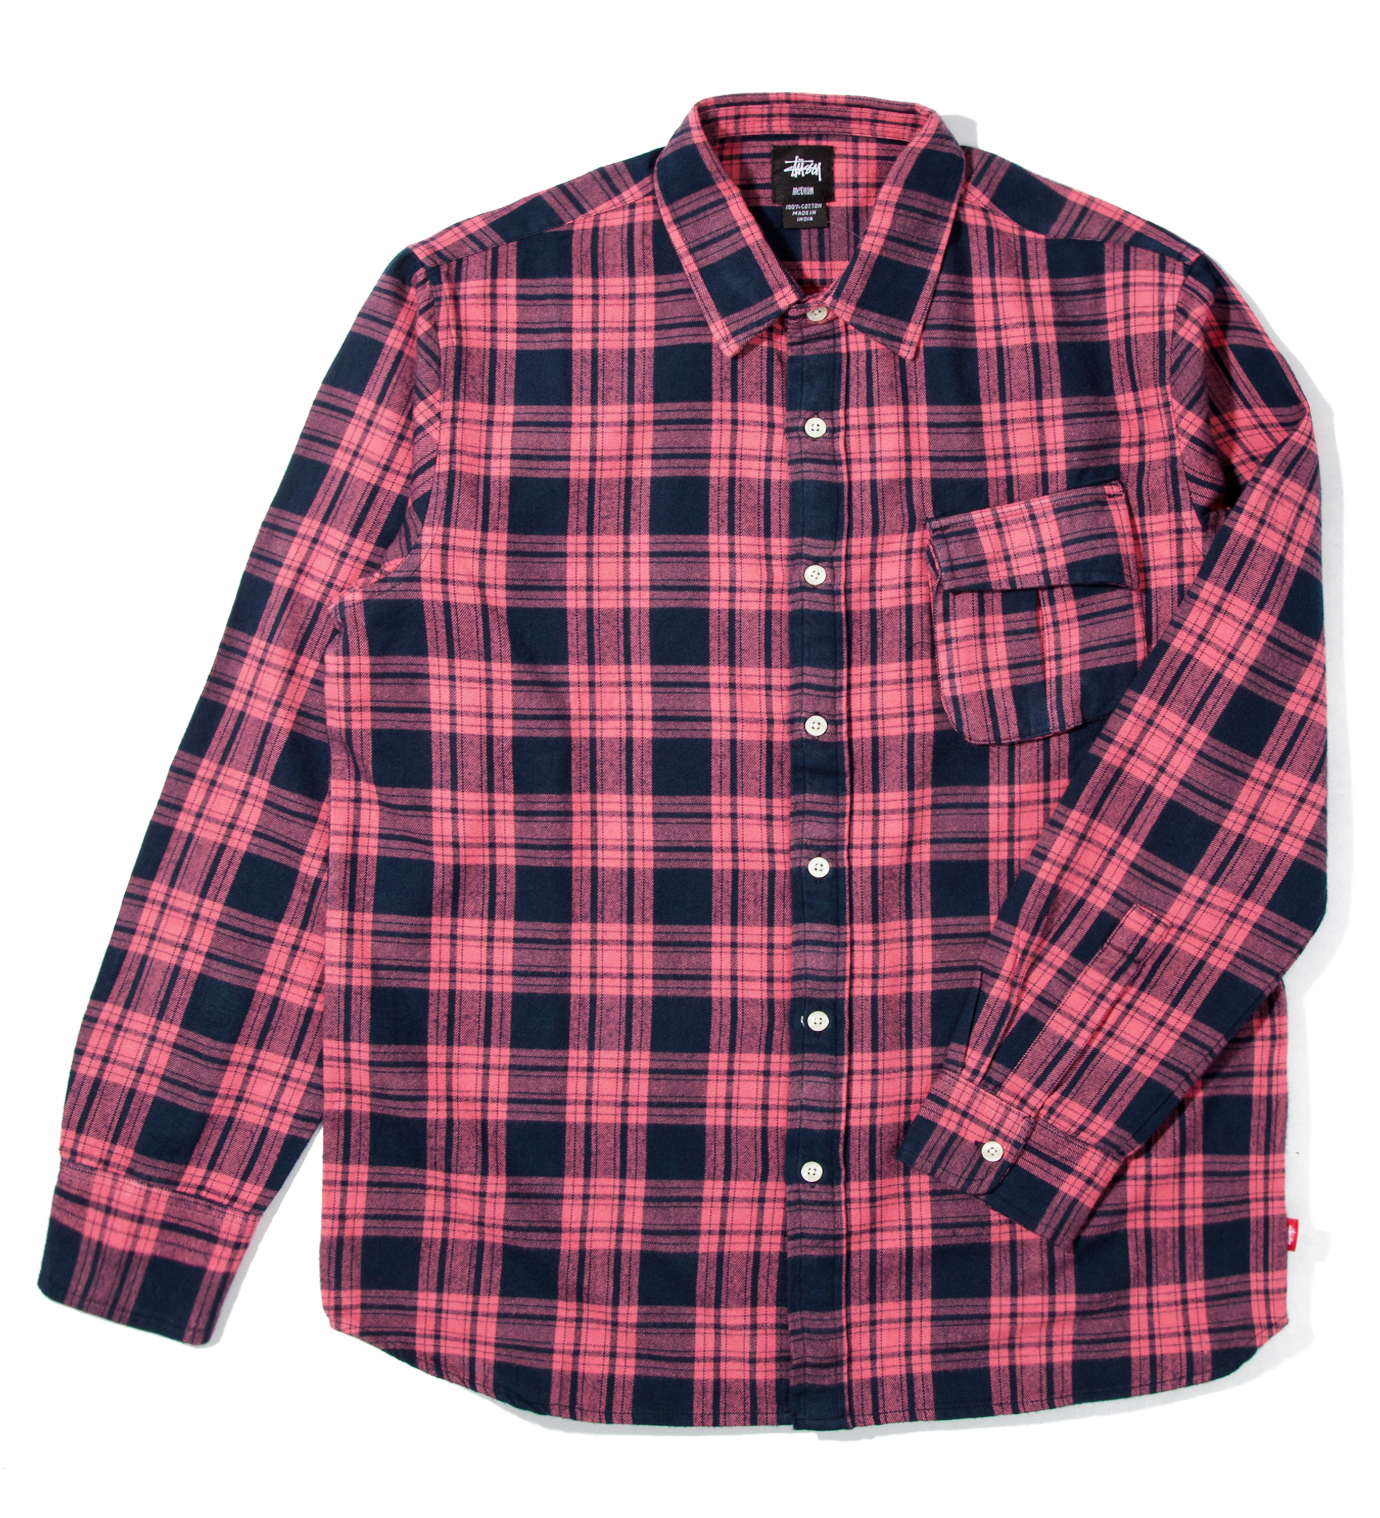 Stussy Red Color Flannel Shirt